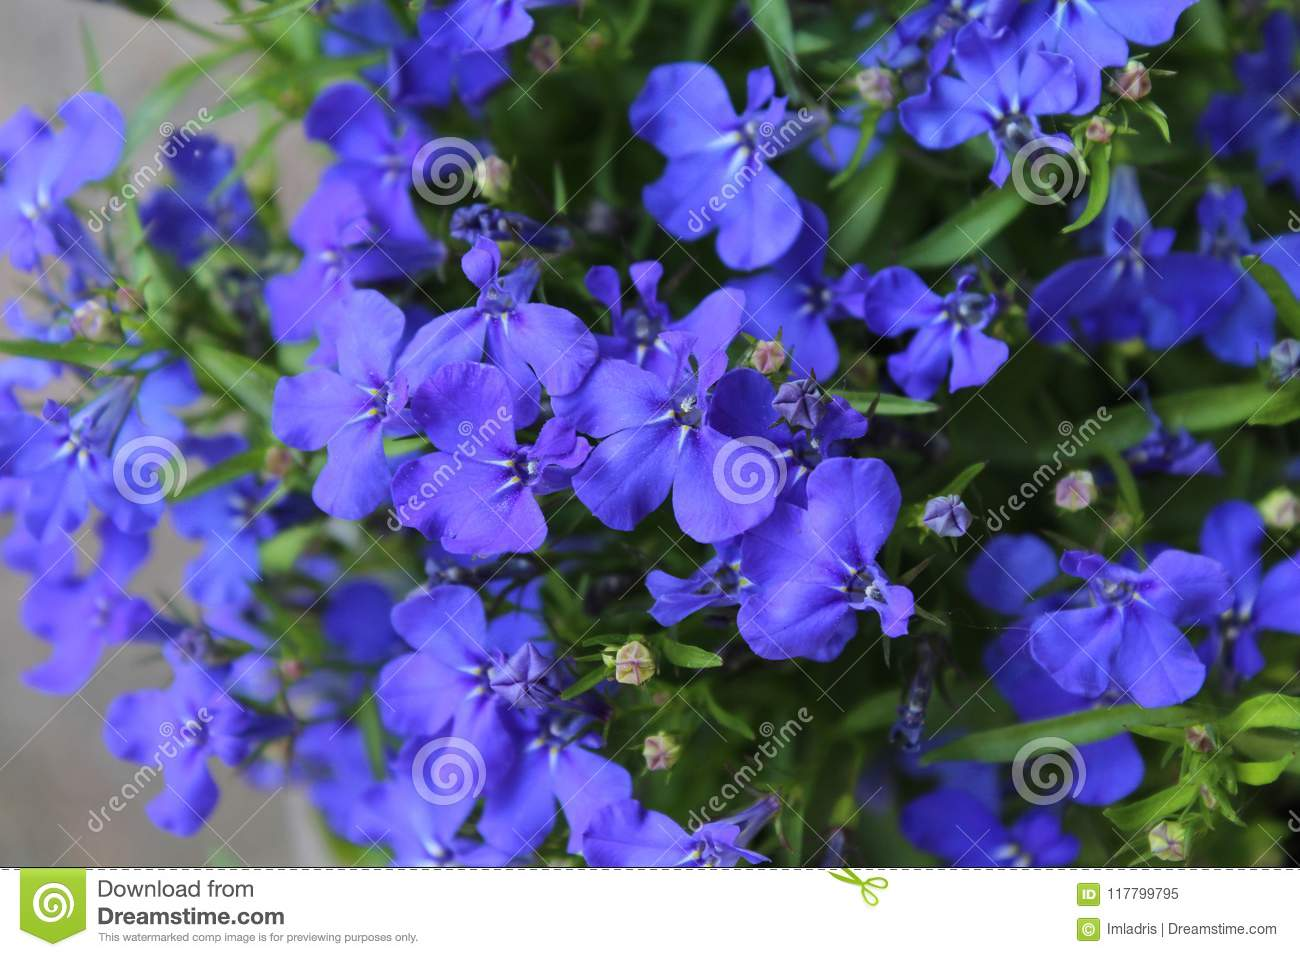 Blue Lobelia Bedding Plant Stock Image Image Of Container 117799795